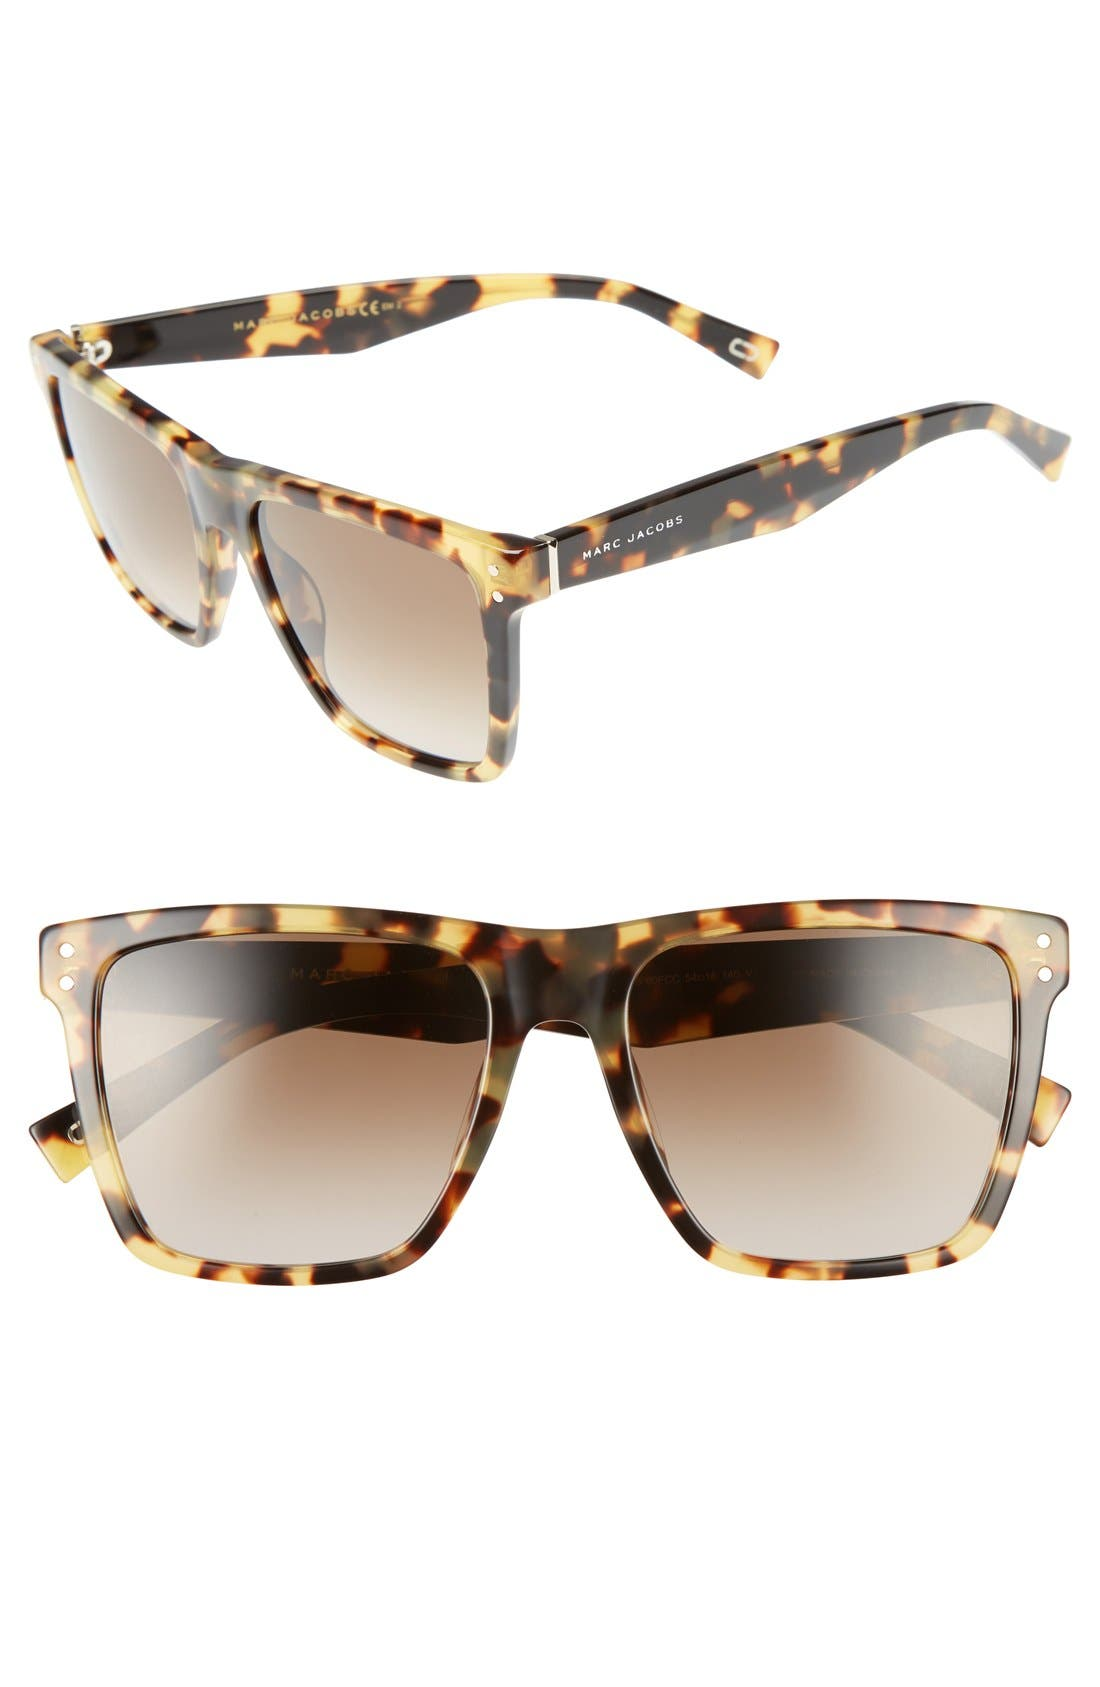 54mm Flat Top Gradient Square Frame Sunglasses,                             Main thumbnail 1, color,                             Spotted Havana